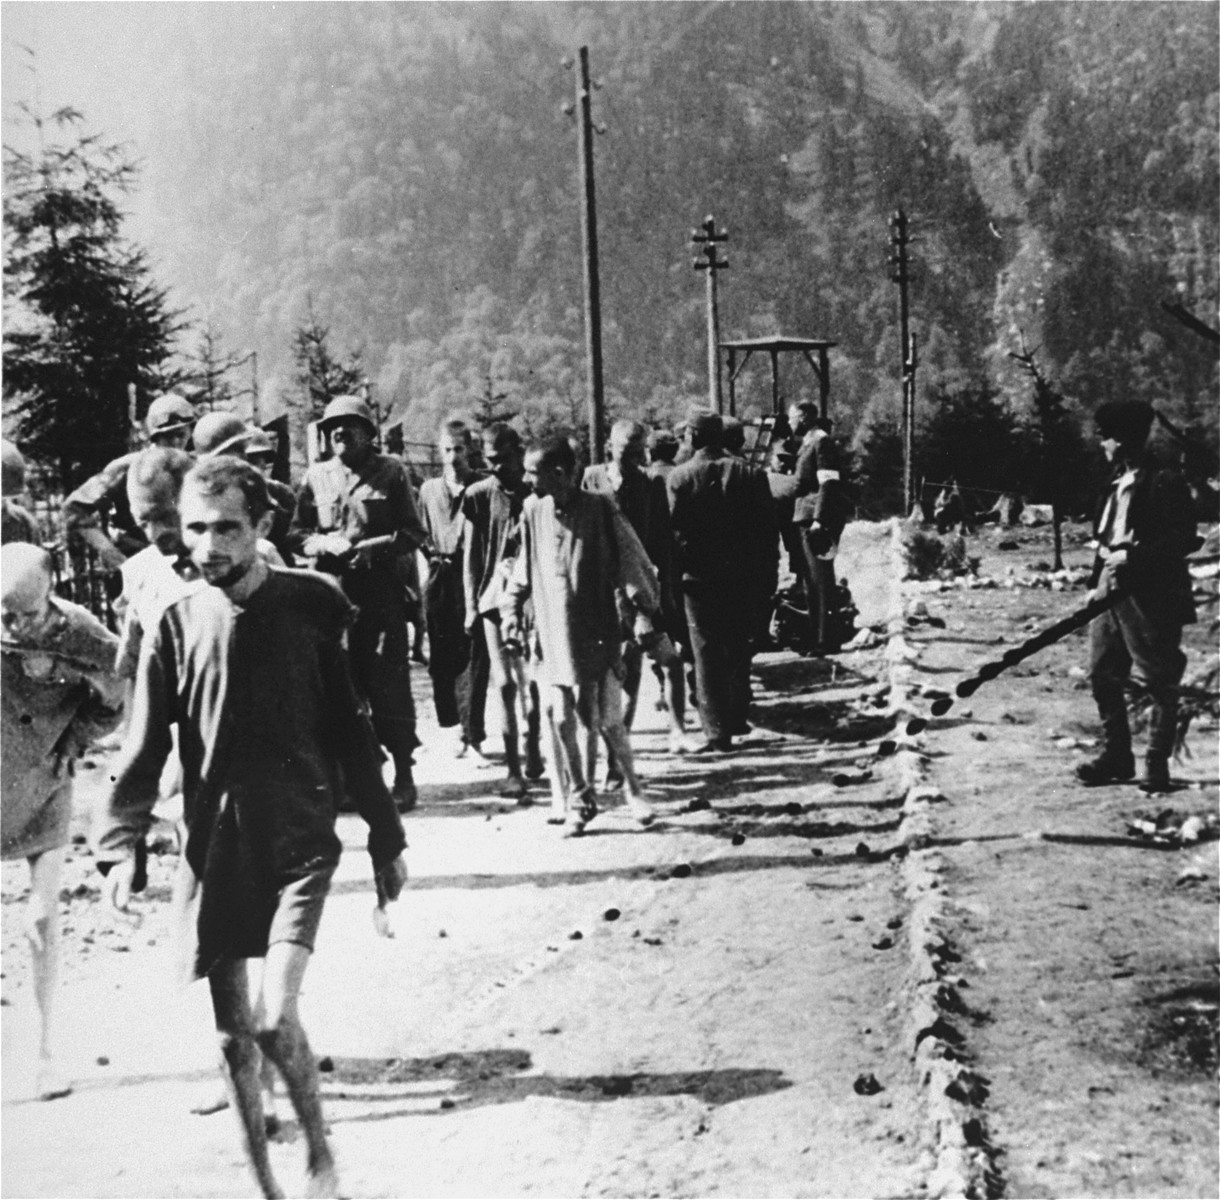 American soldiers walk among emaciated survivors along a road in the Ebensee concentration camp.